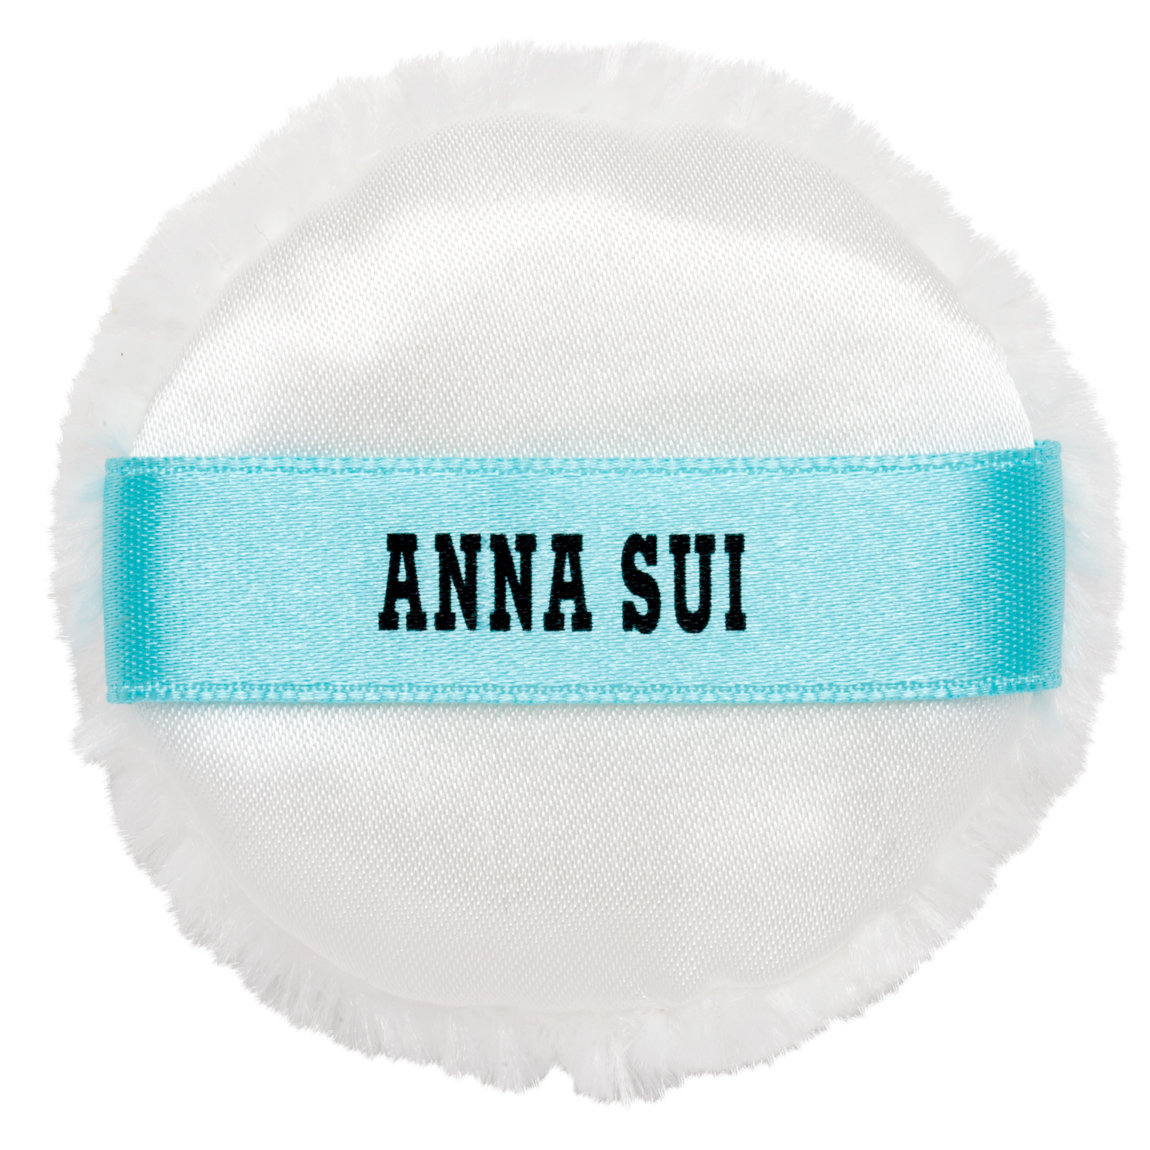 Anna Sui Brightening Face Powder Mini Puff 2 product smear.